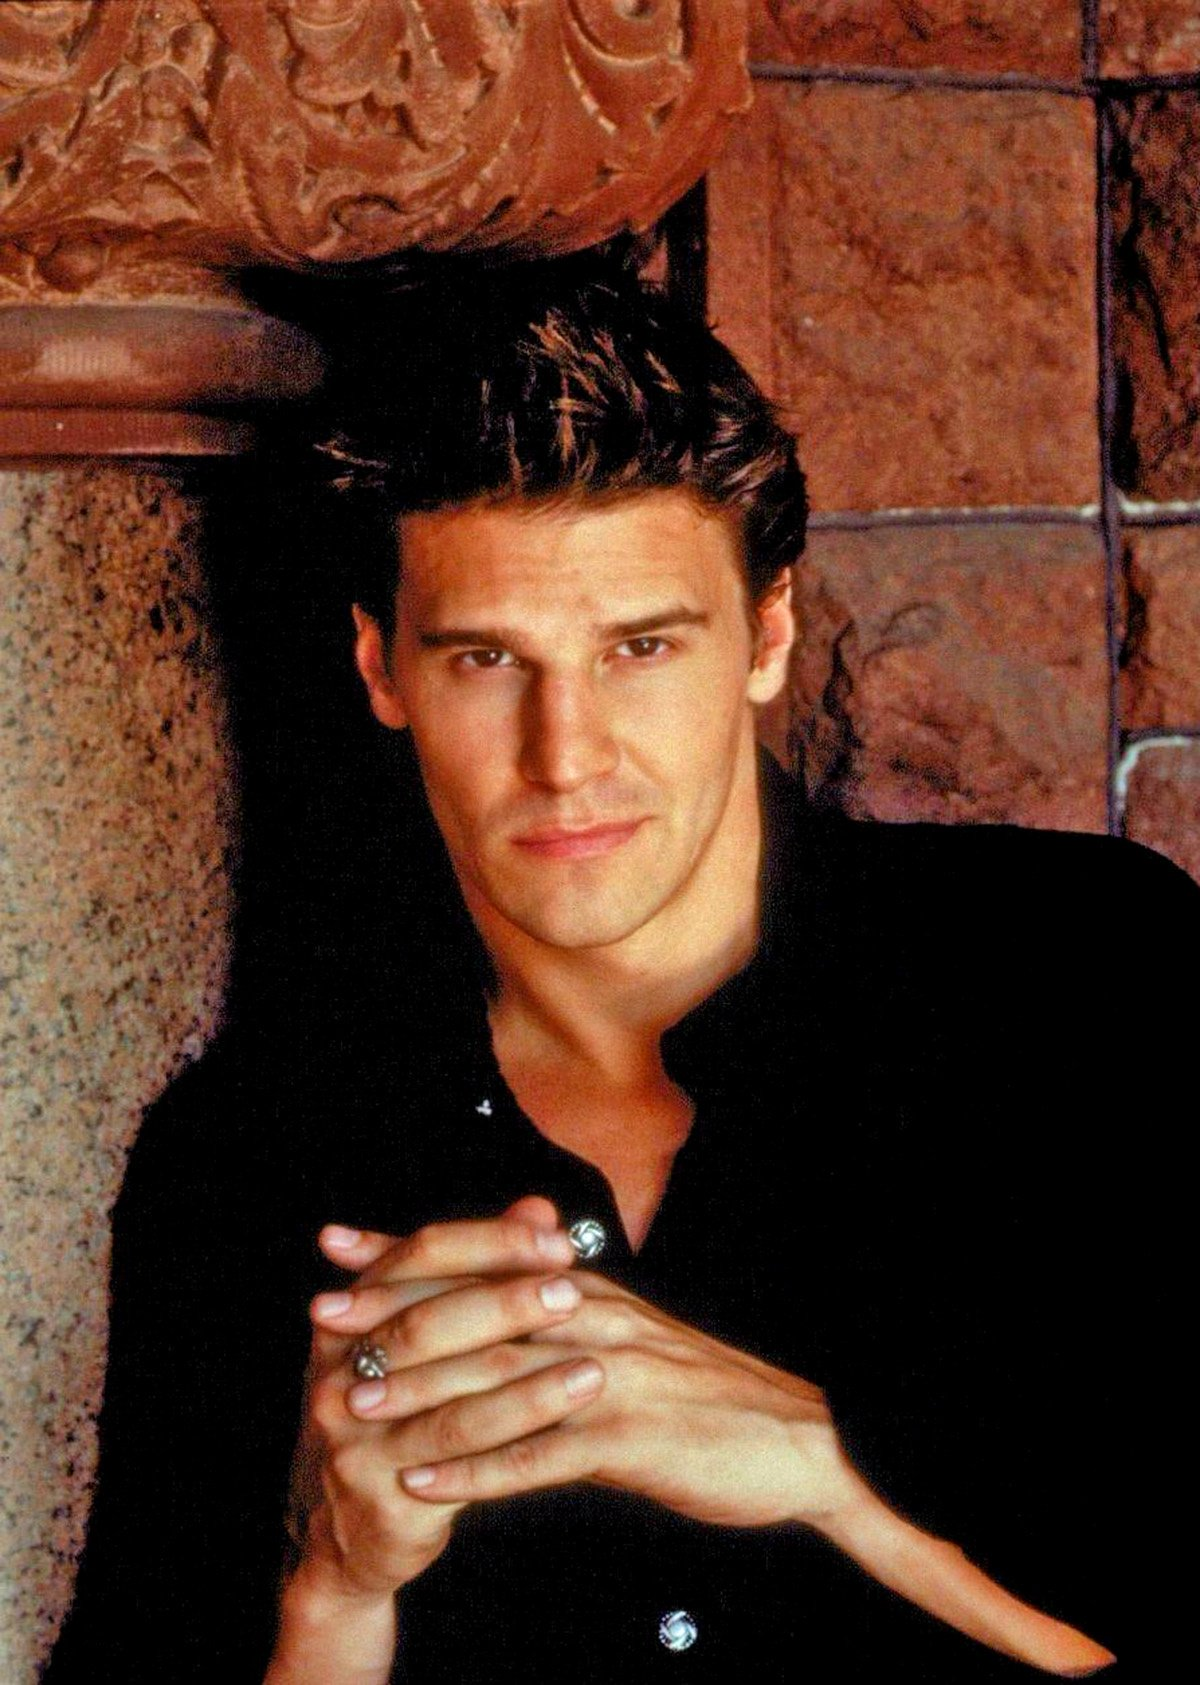 buffy-david-boreanaz-angel-dvdbash04.jpg